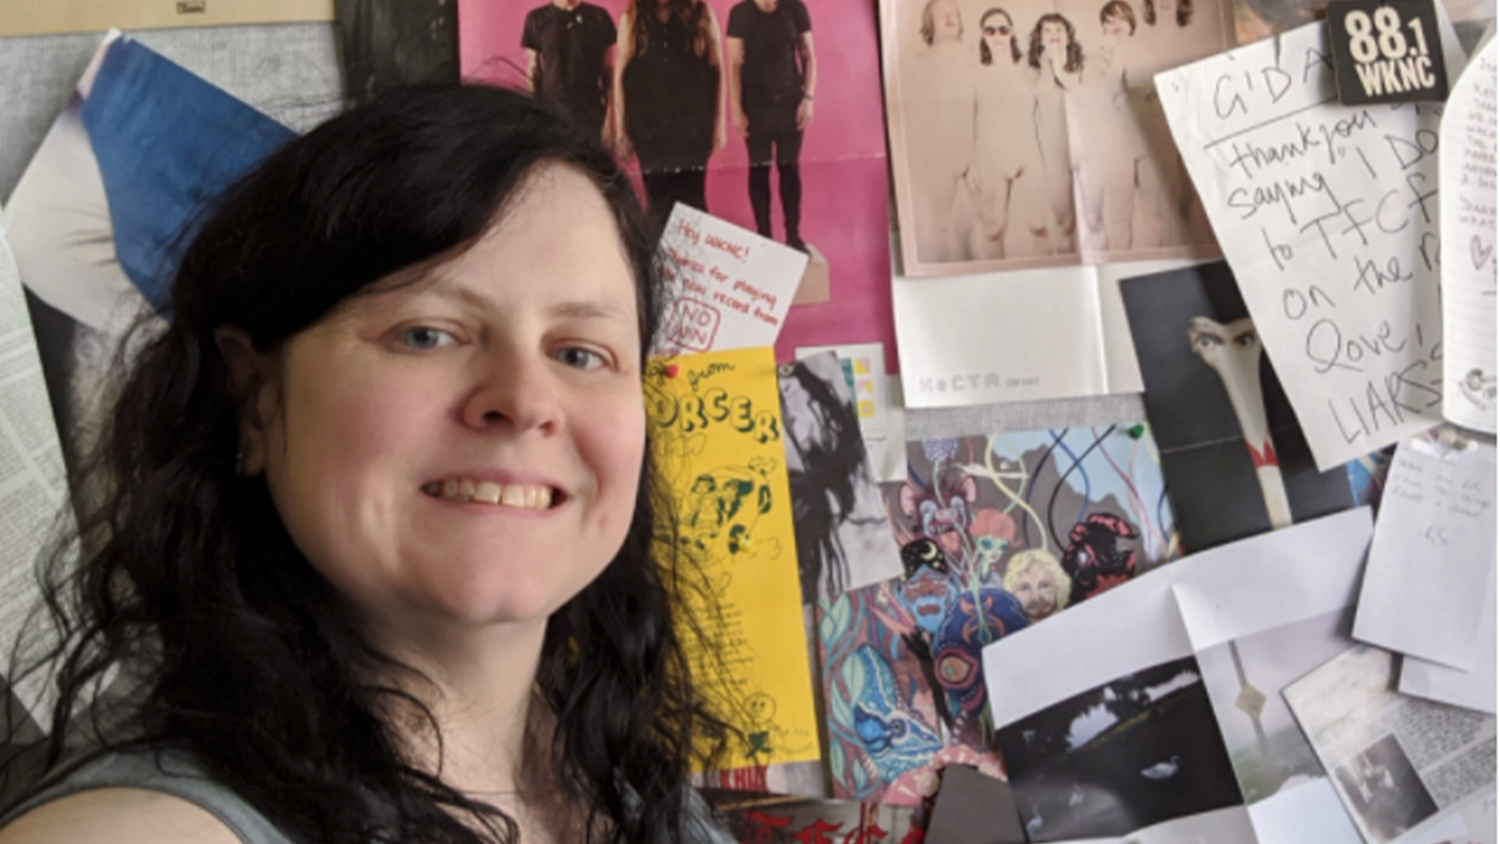 Jamie Lynn Gilbert in front of a wall full of music-related posters